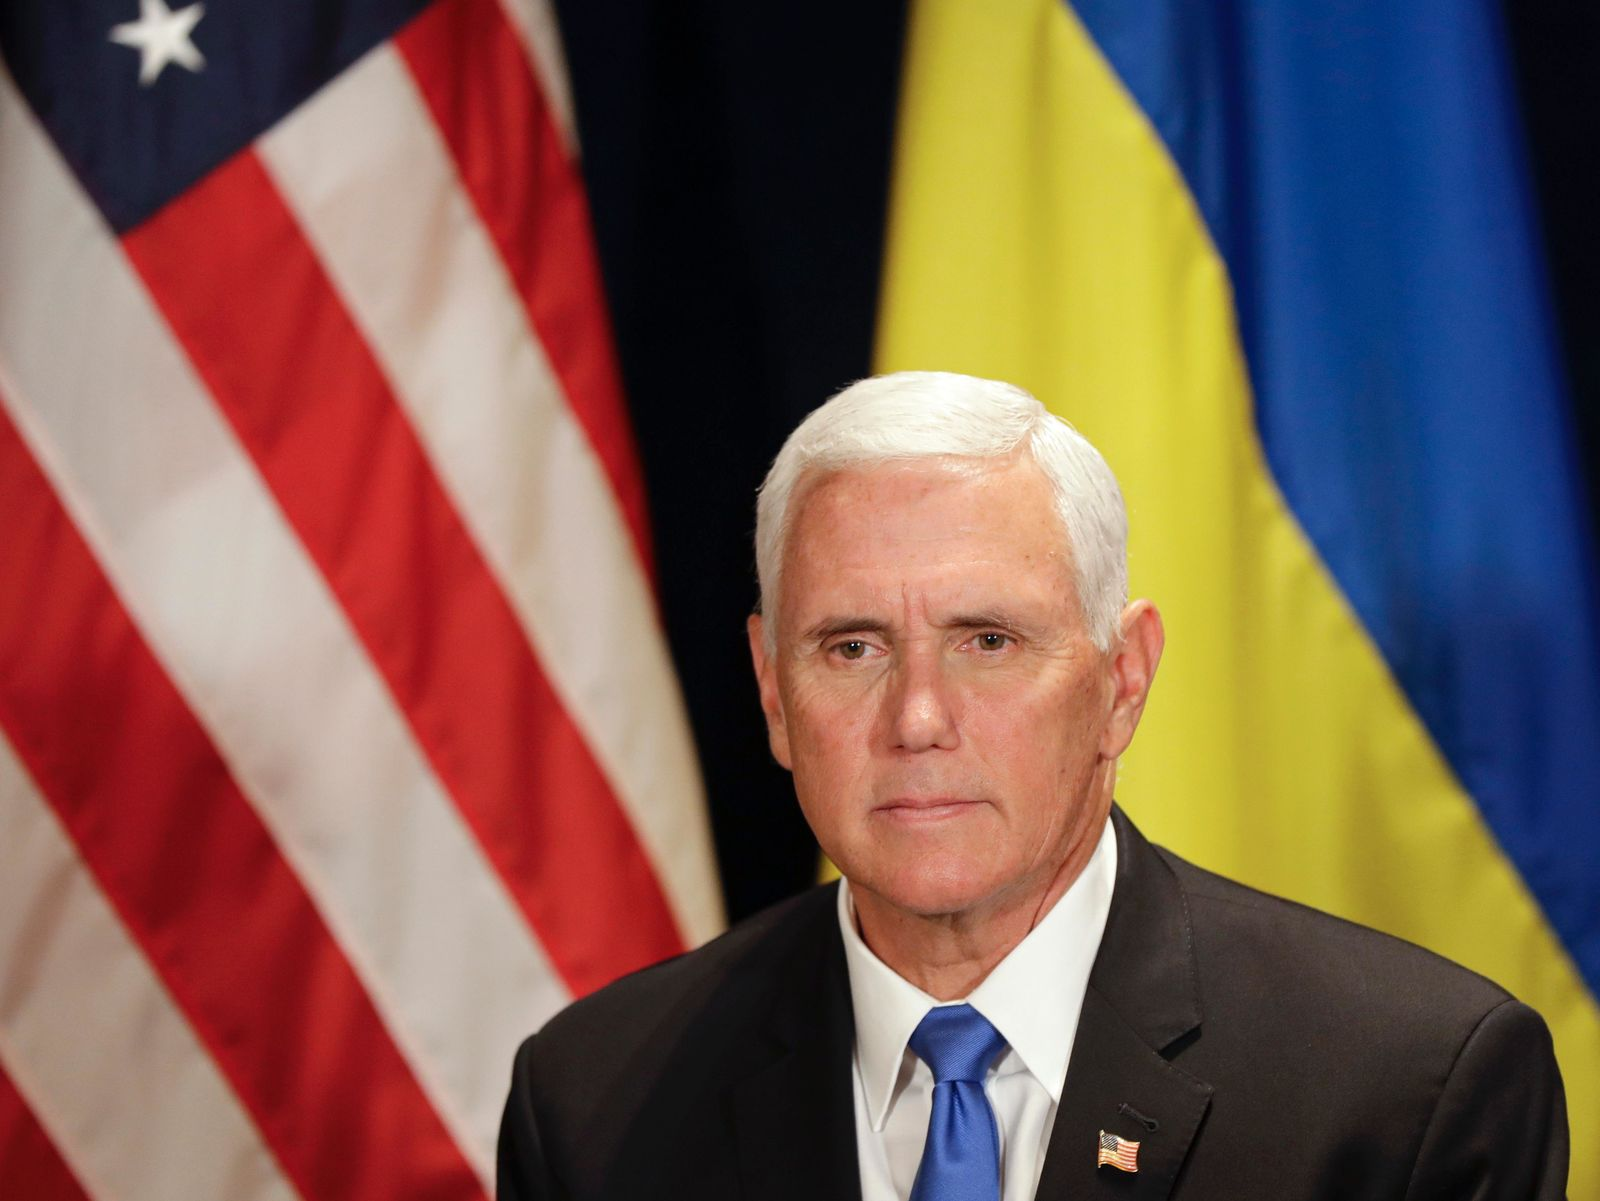 U.S. Vice President Mike Pence waits before a meeting with Ukraine's President Volodymyr Zelenskiy, in Warsaw, Poland, Sunday, Sept. 1, 2019. (AP Photo/Petr David Josek)